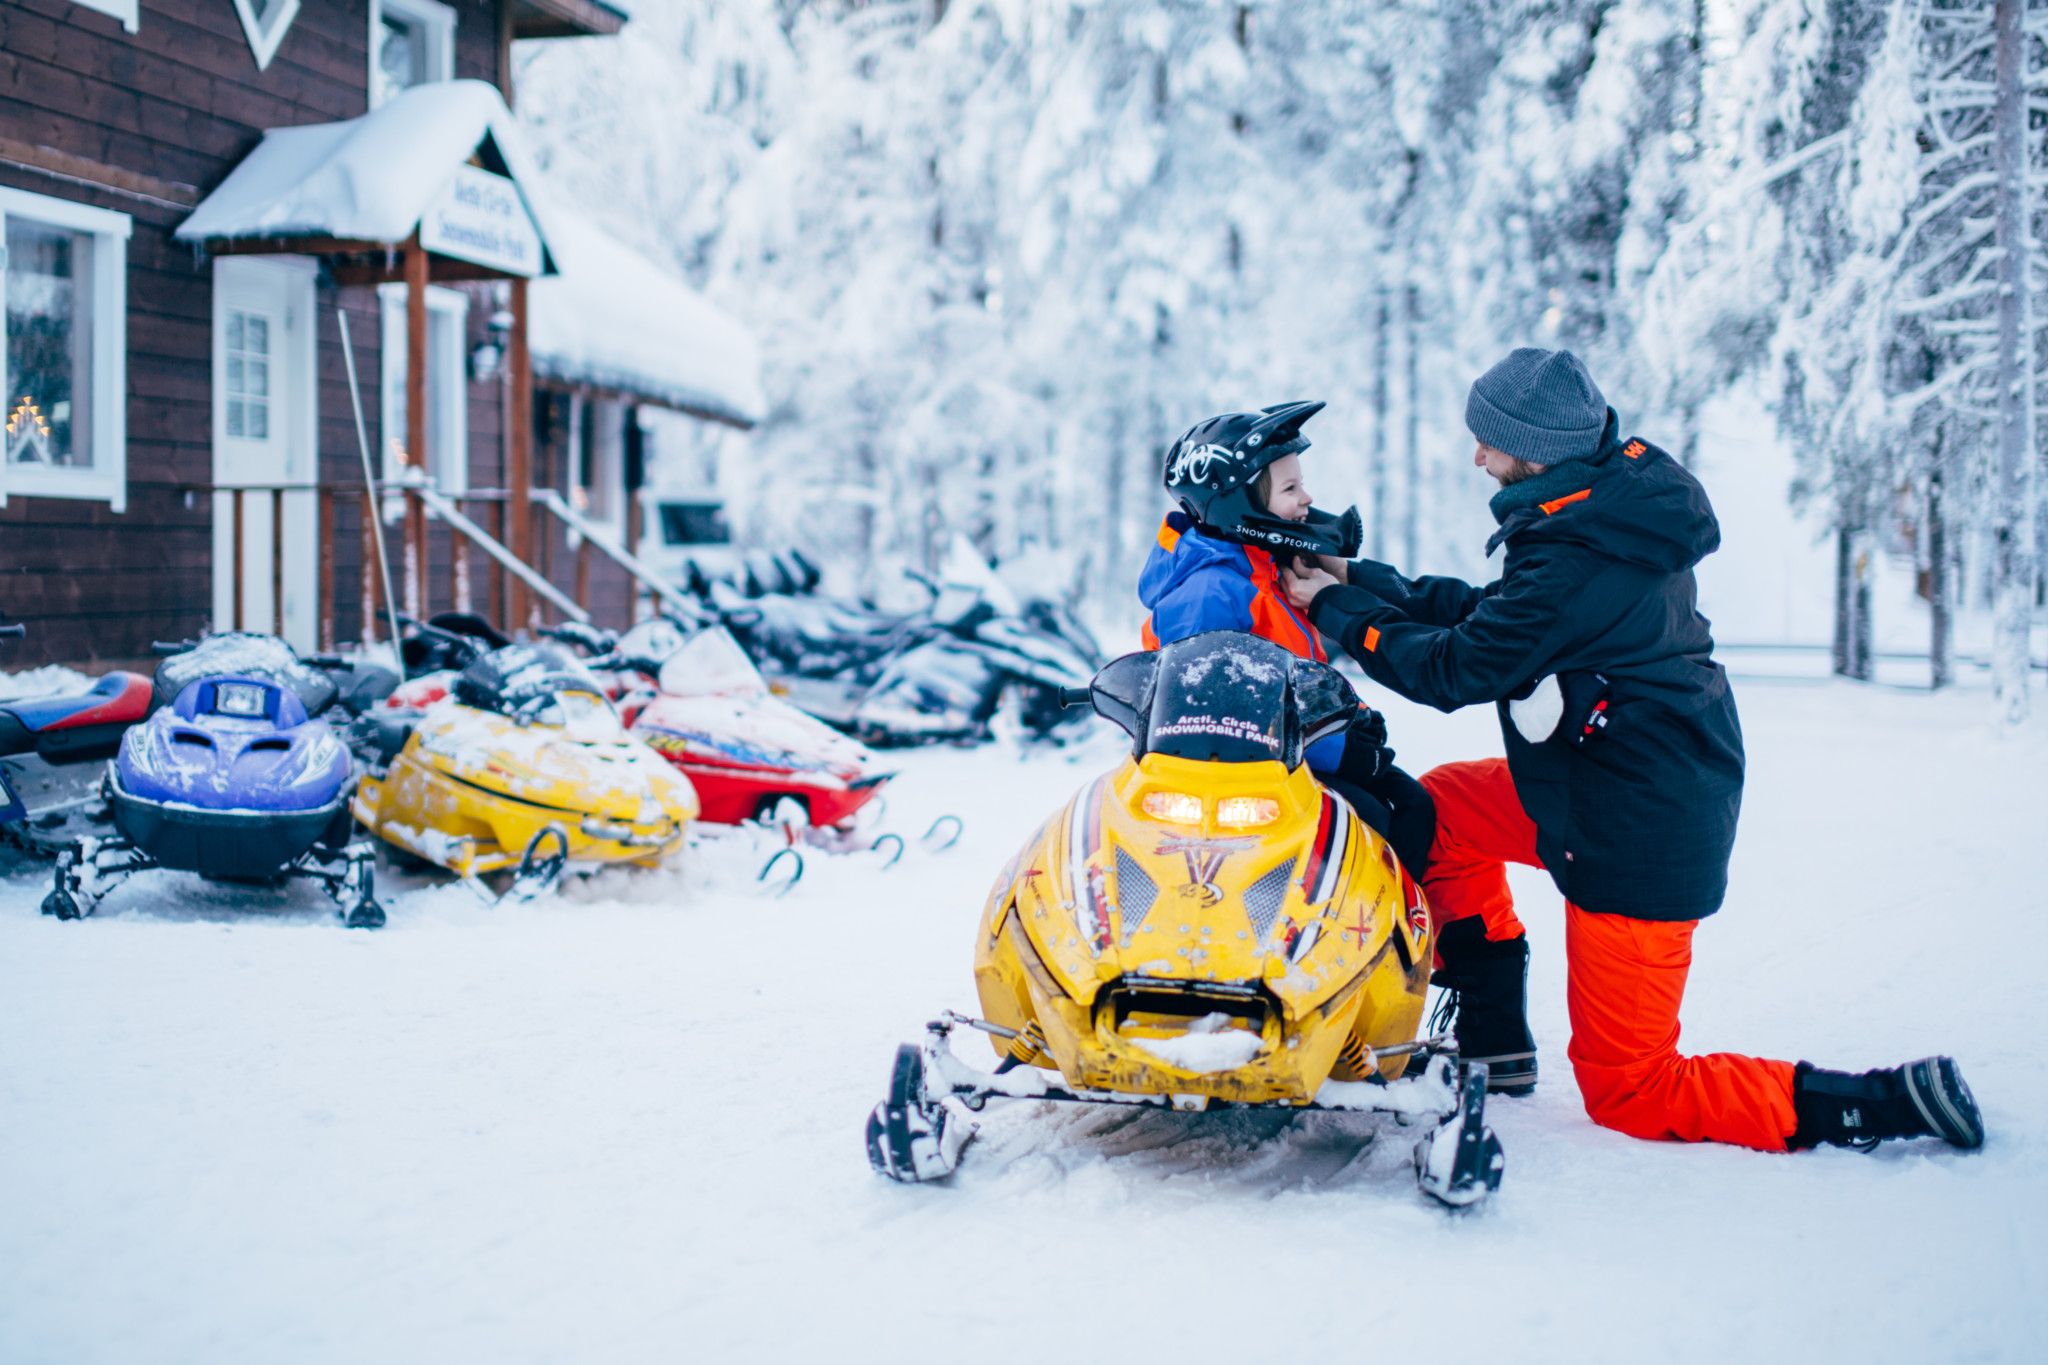 Mini-snowmobiles, Arctic Circle Snowmobile Park